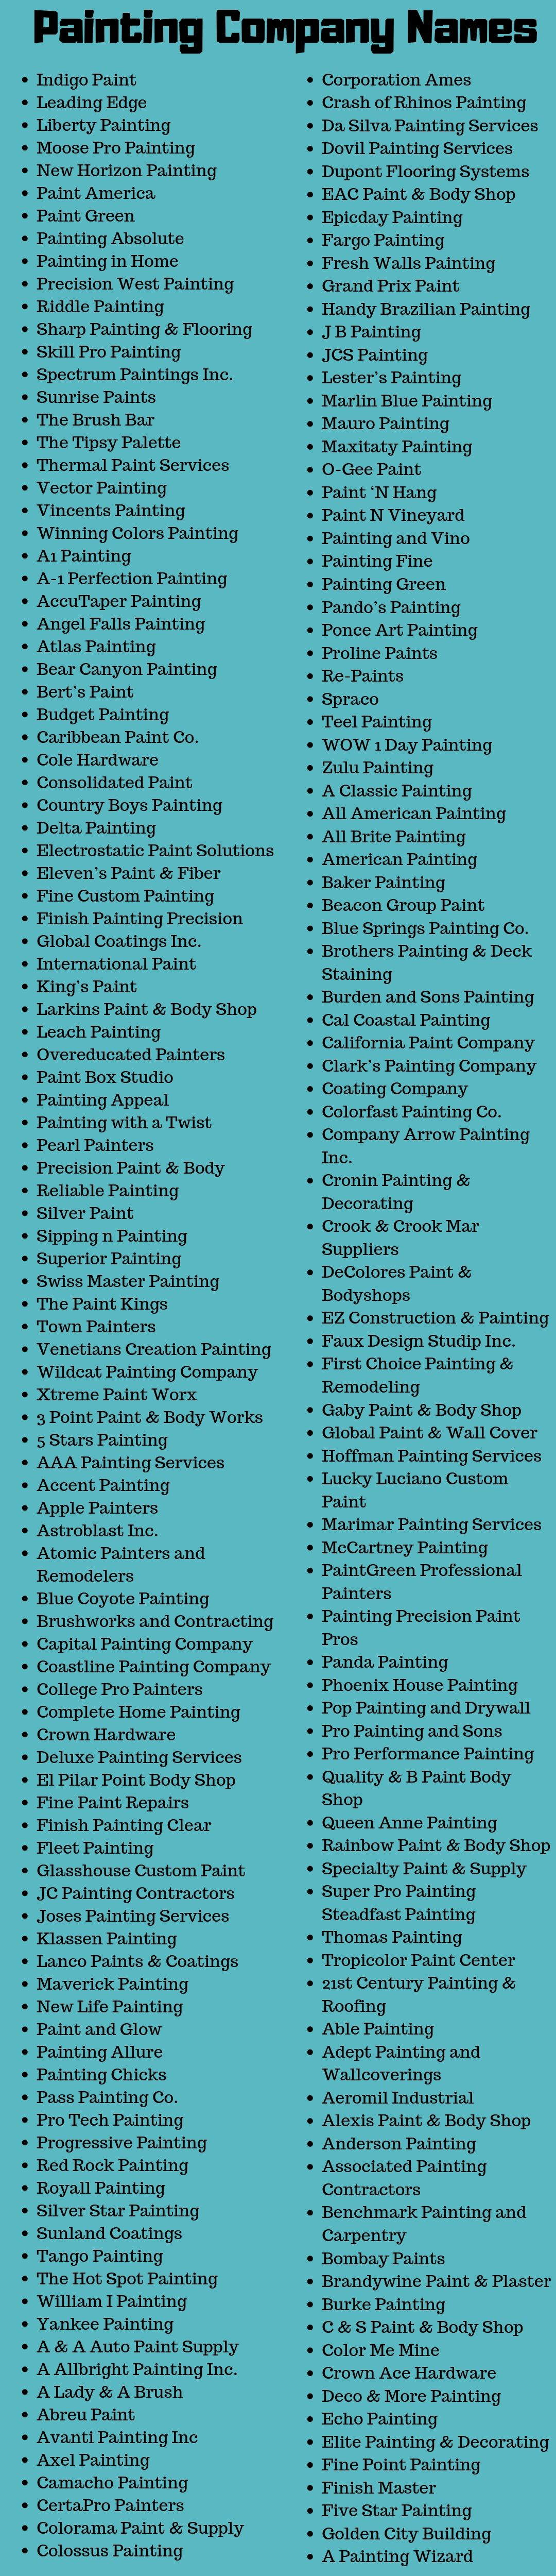 370 Painting Company Names Ideas Suggestions Worth Start